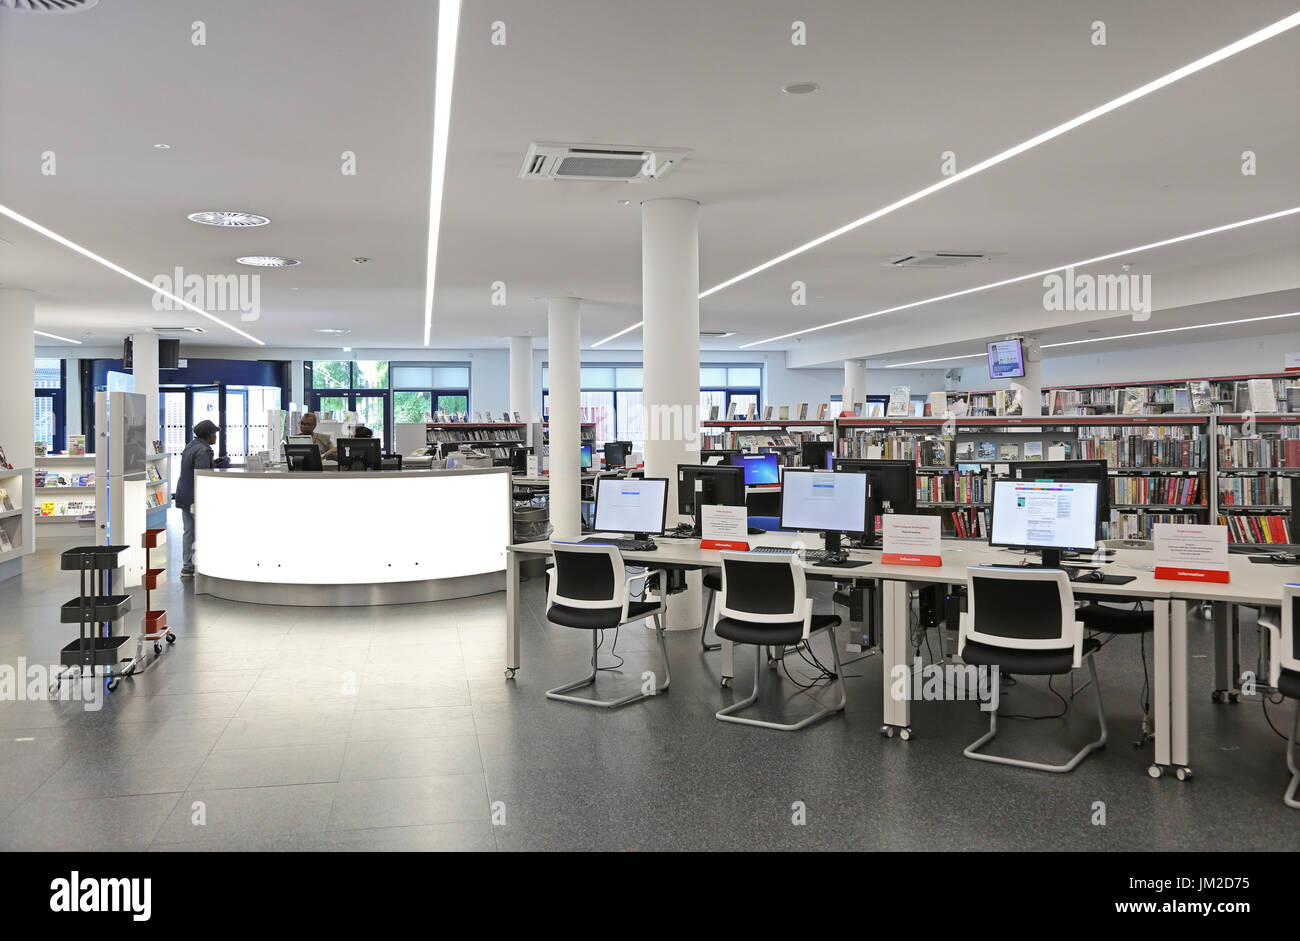 Interior view of the newly rebuilt Marcus Garvey Library in London Borough of Haringey, UK. Shows traditional bookshelves and new computer terminals. - Stock Image